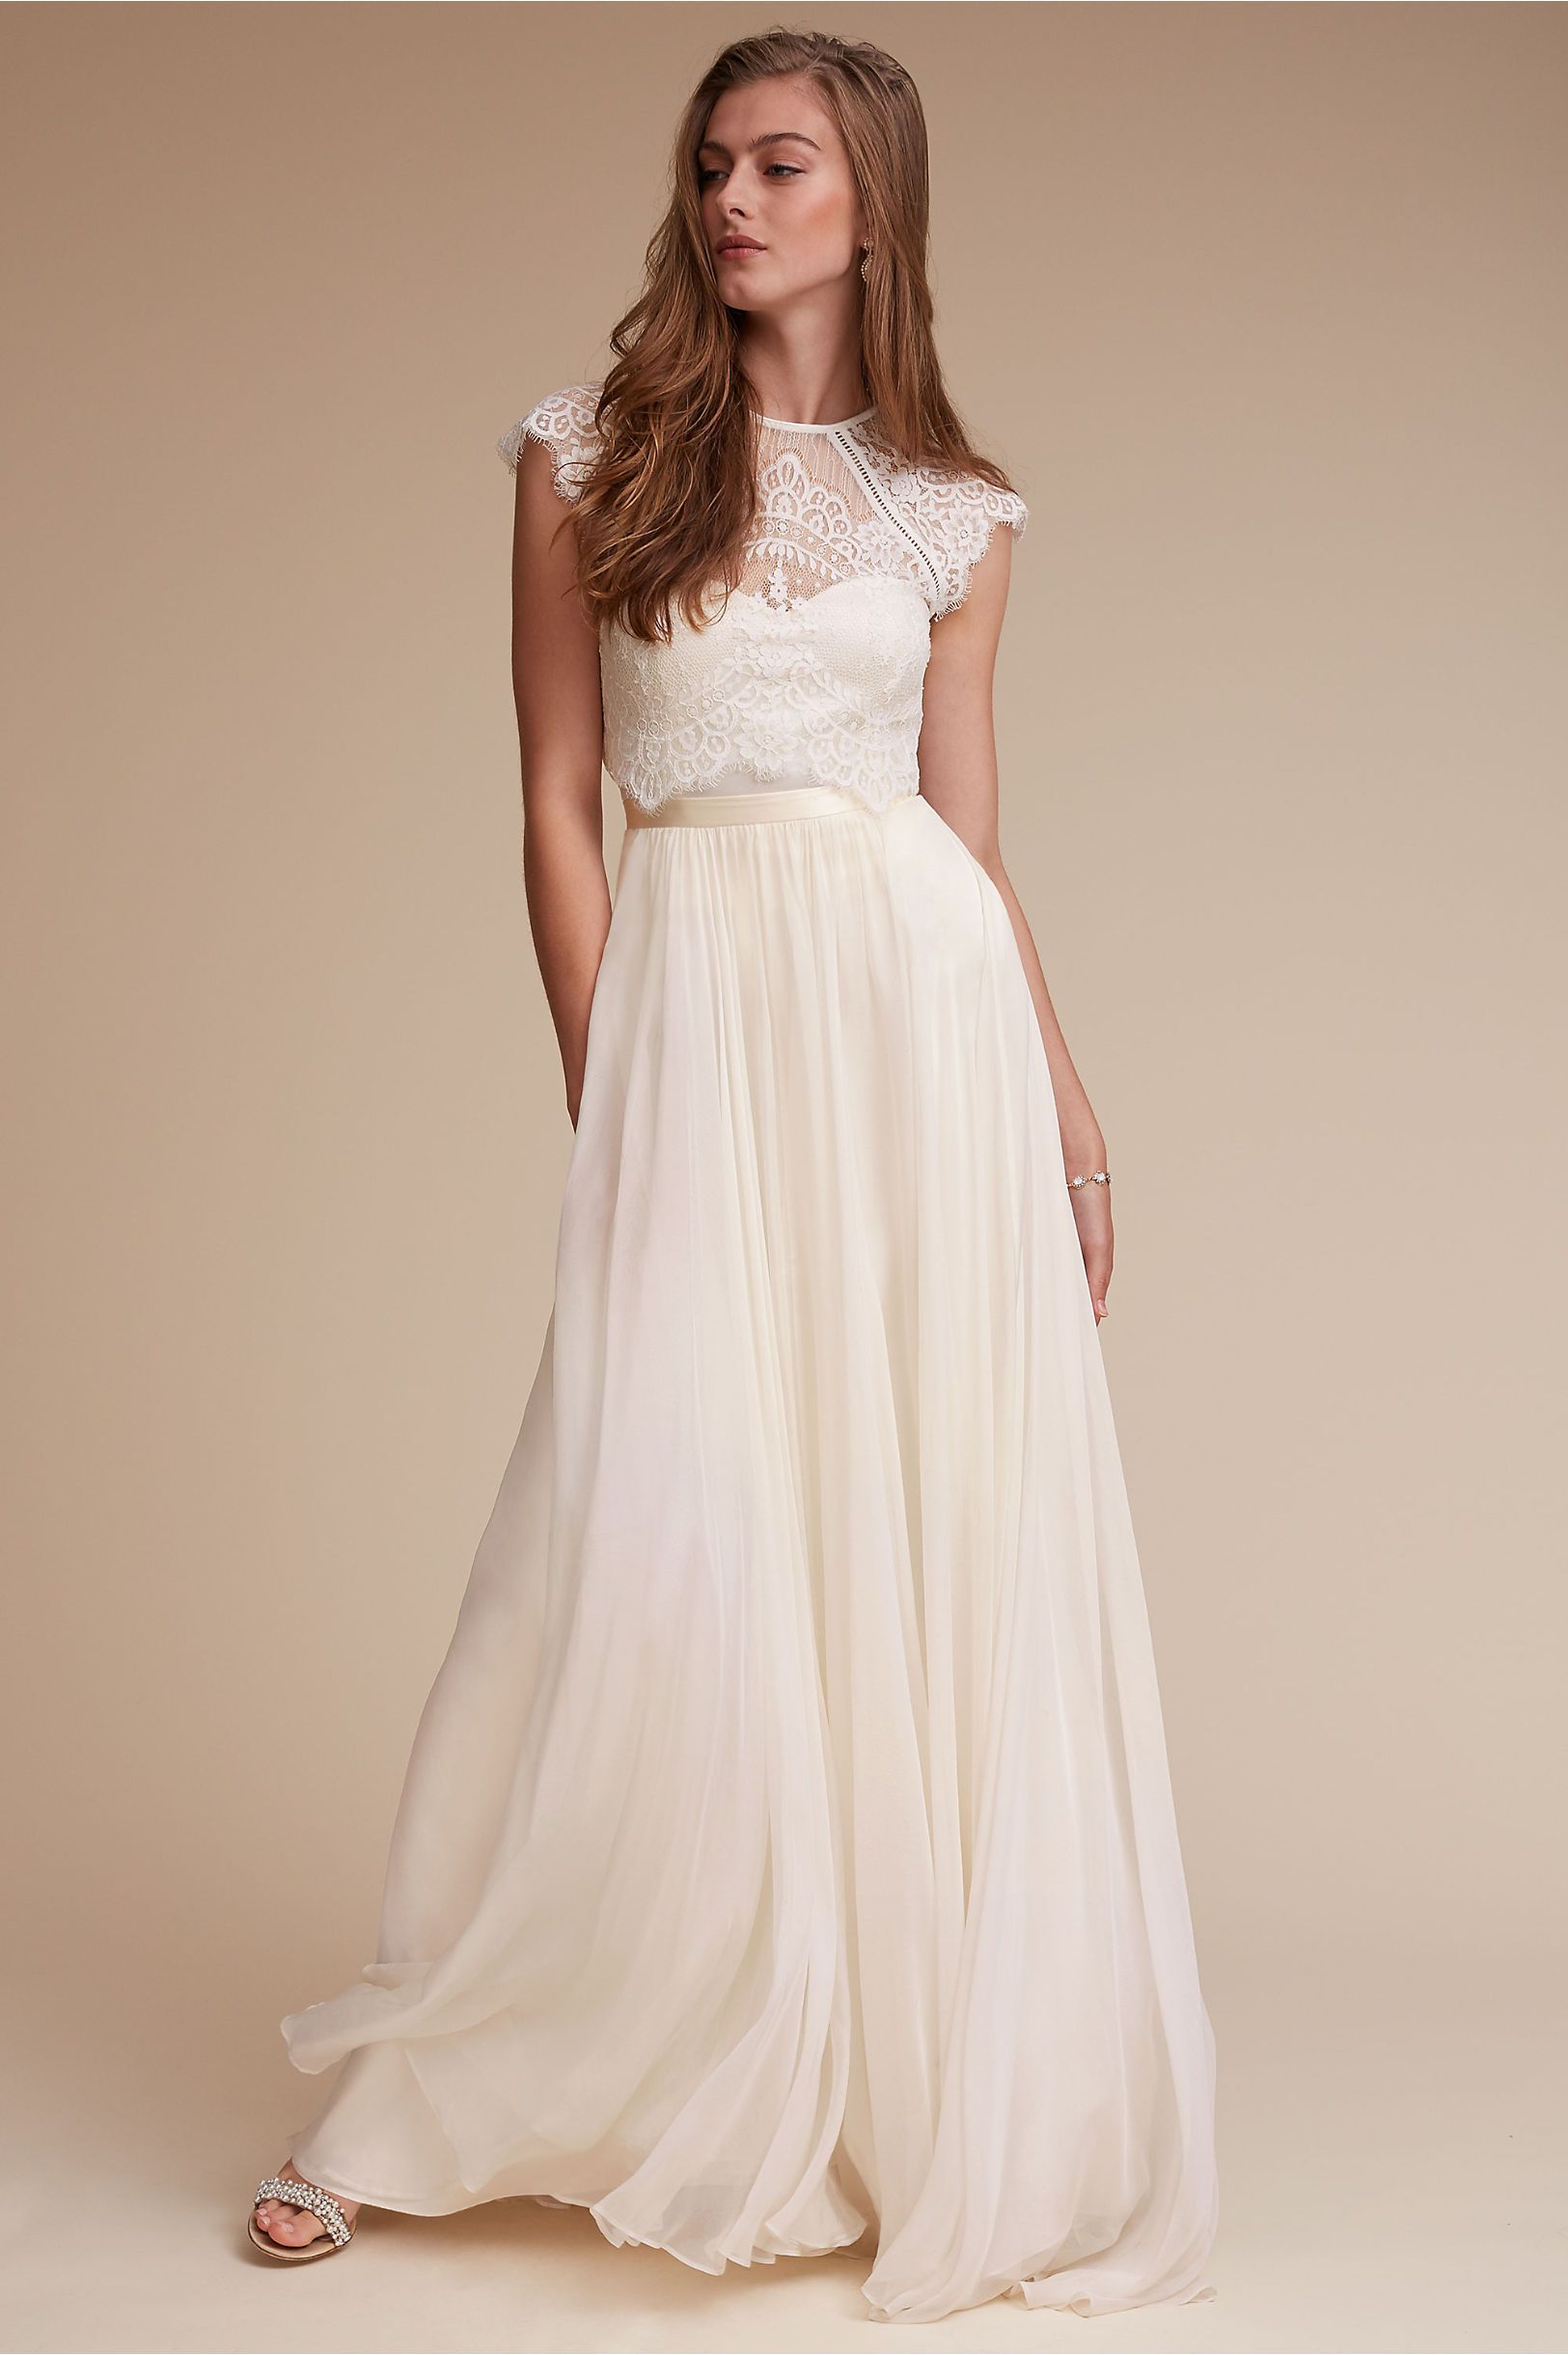 Itala Top Delia Maxi Skirt From Low Cost Wedding Dress